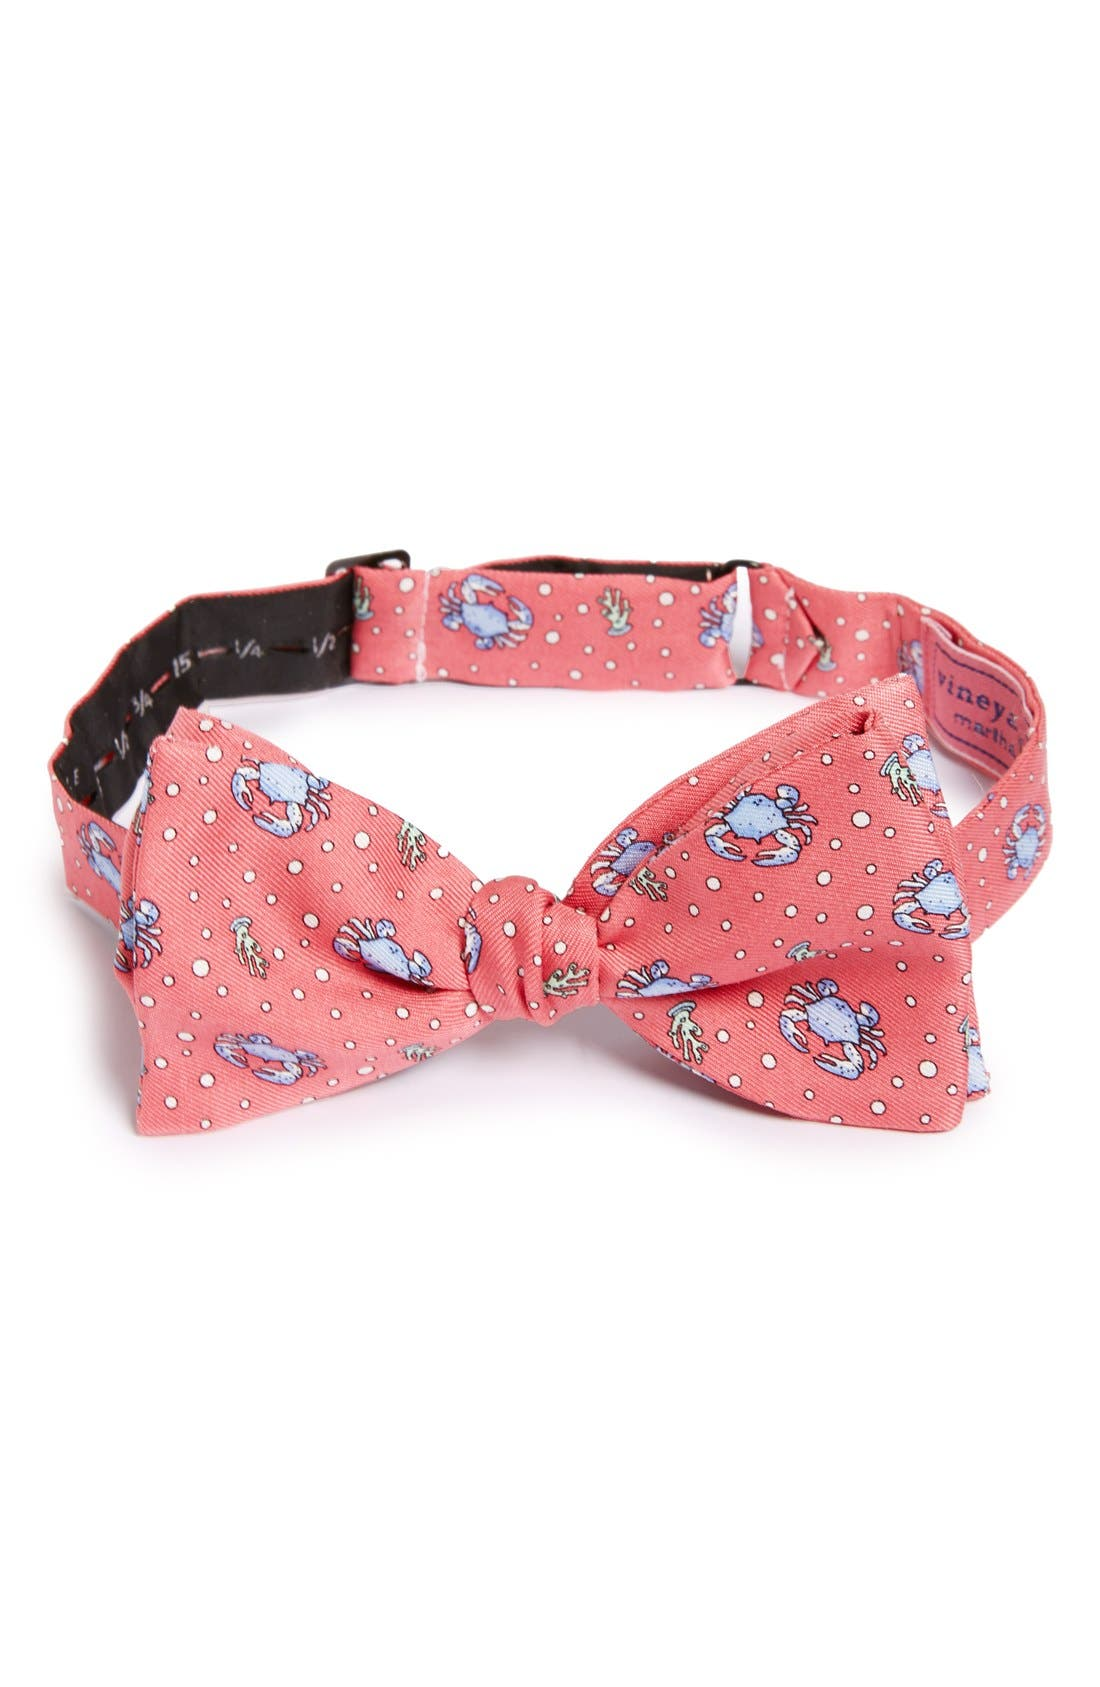 Crab Silk Bow Tie,                             Main thumbnail 1, color,                             660